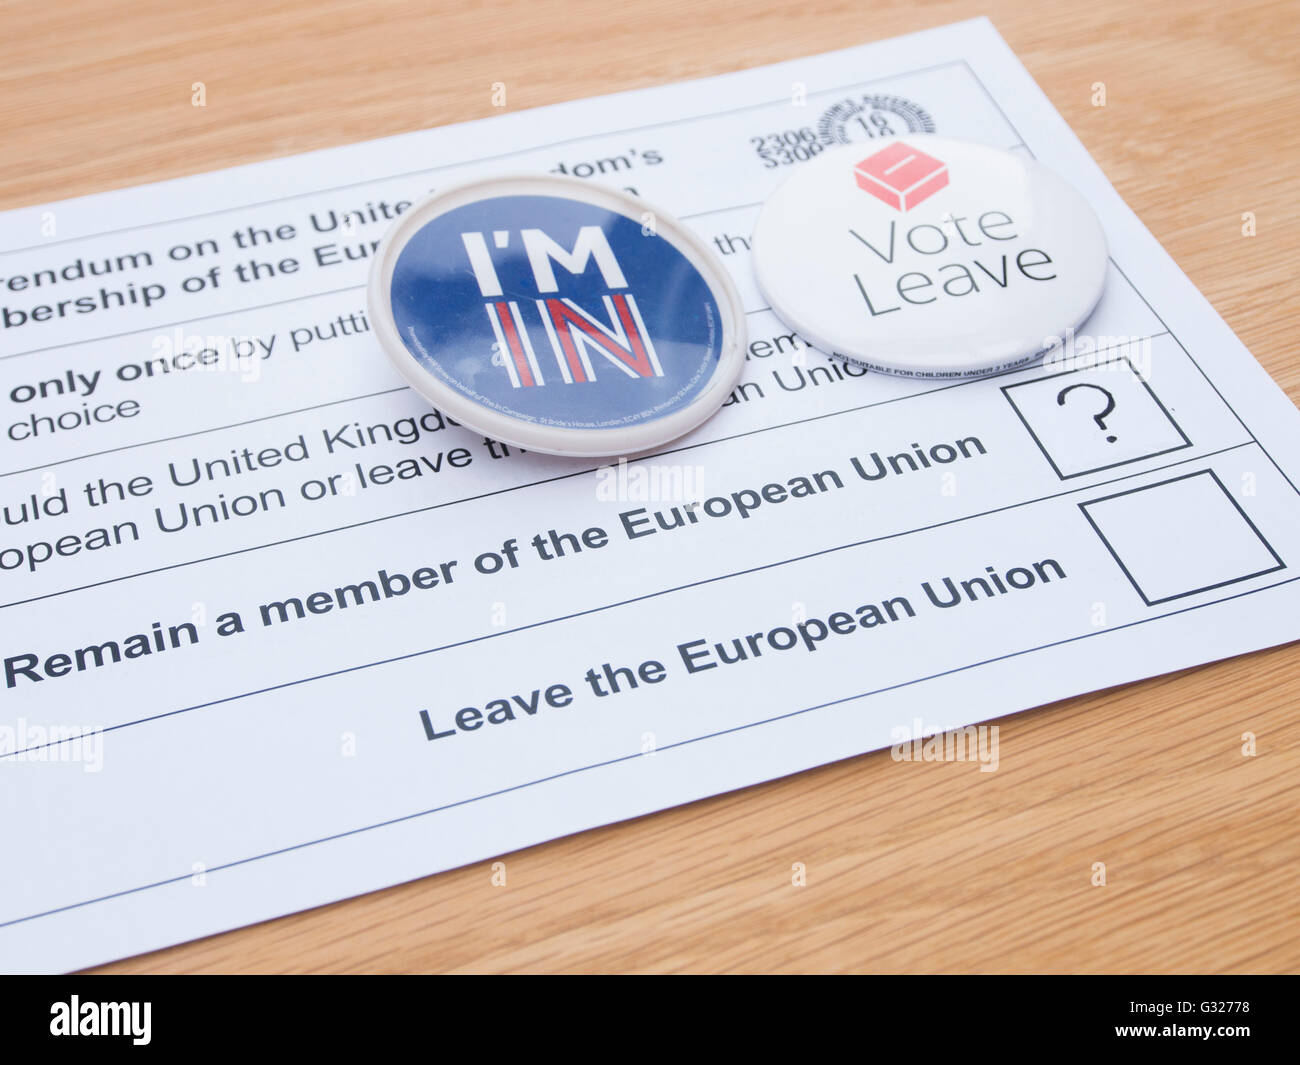 Exeter Uk 7 Juin 2016 Referendum De L Union Europeenne Le Vote Par